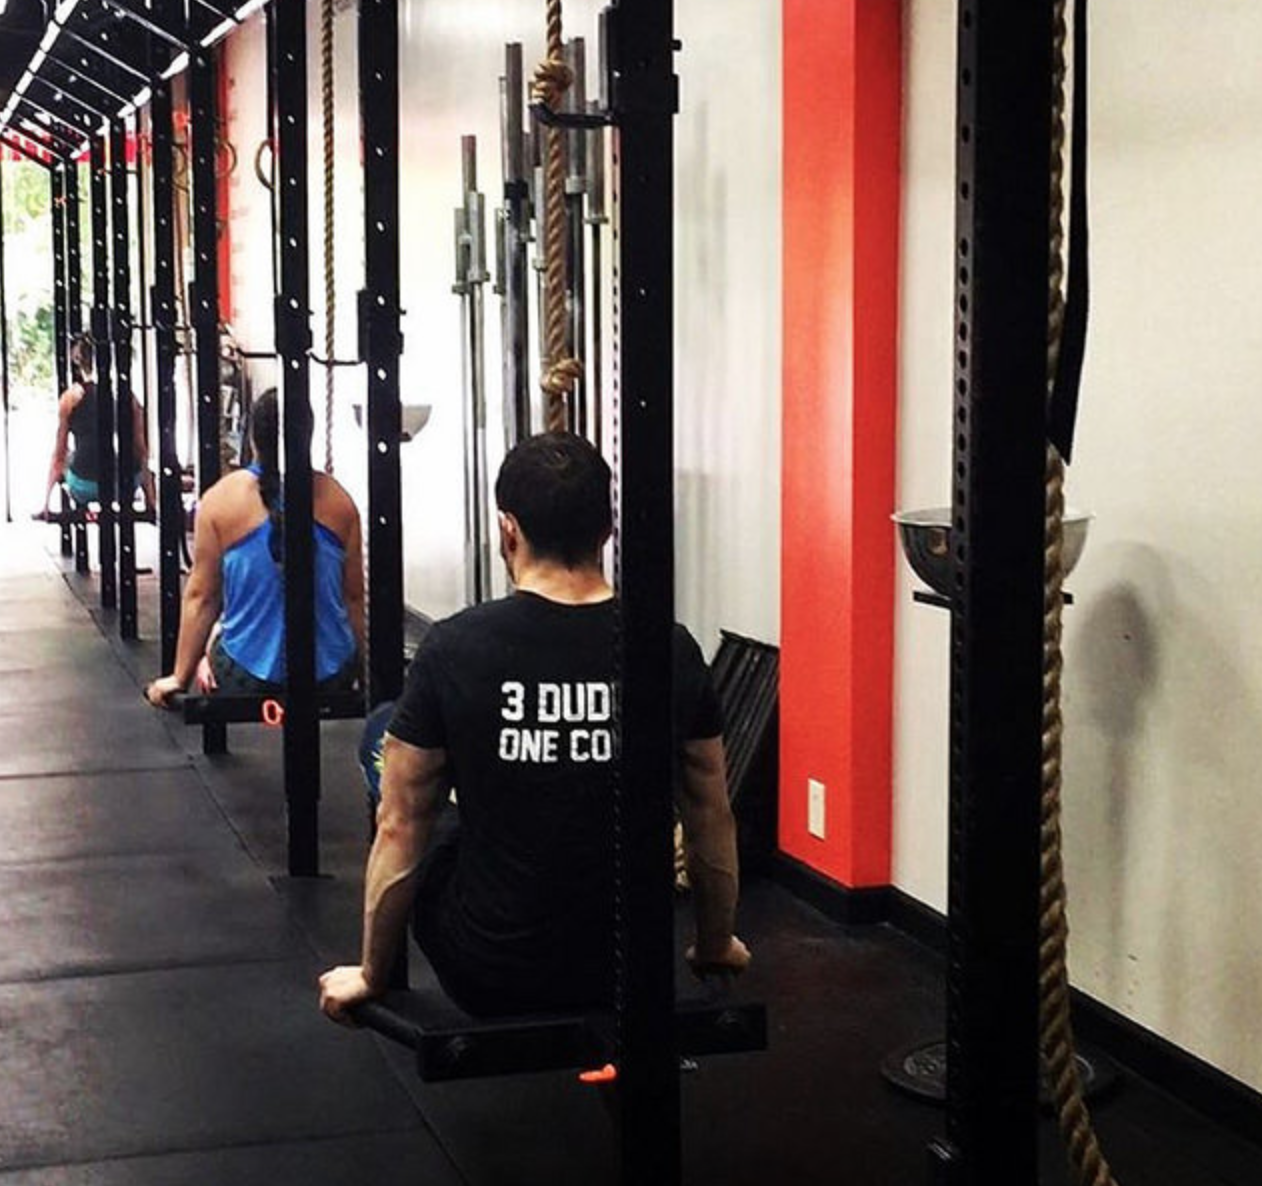 what is crossfit? - CrossFit is defined as constantly varied functional movements performed at high intensity.